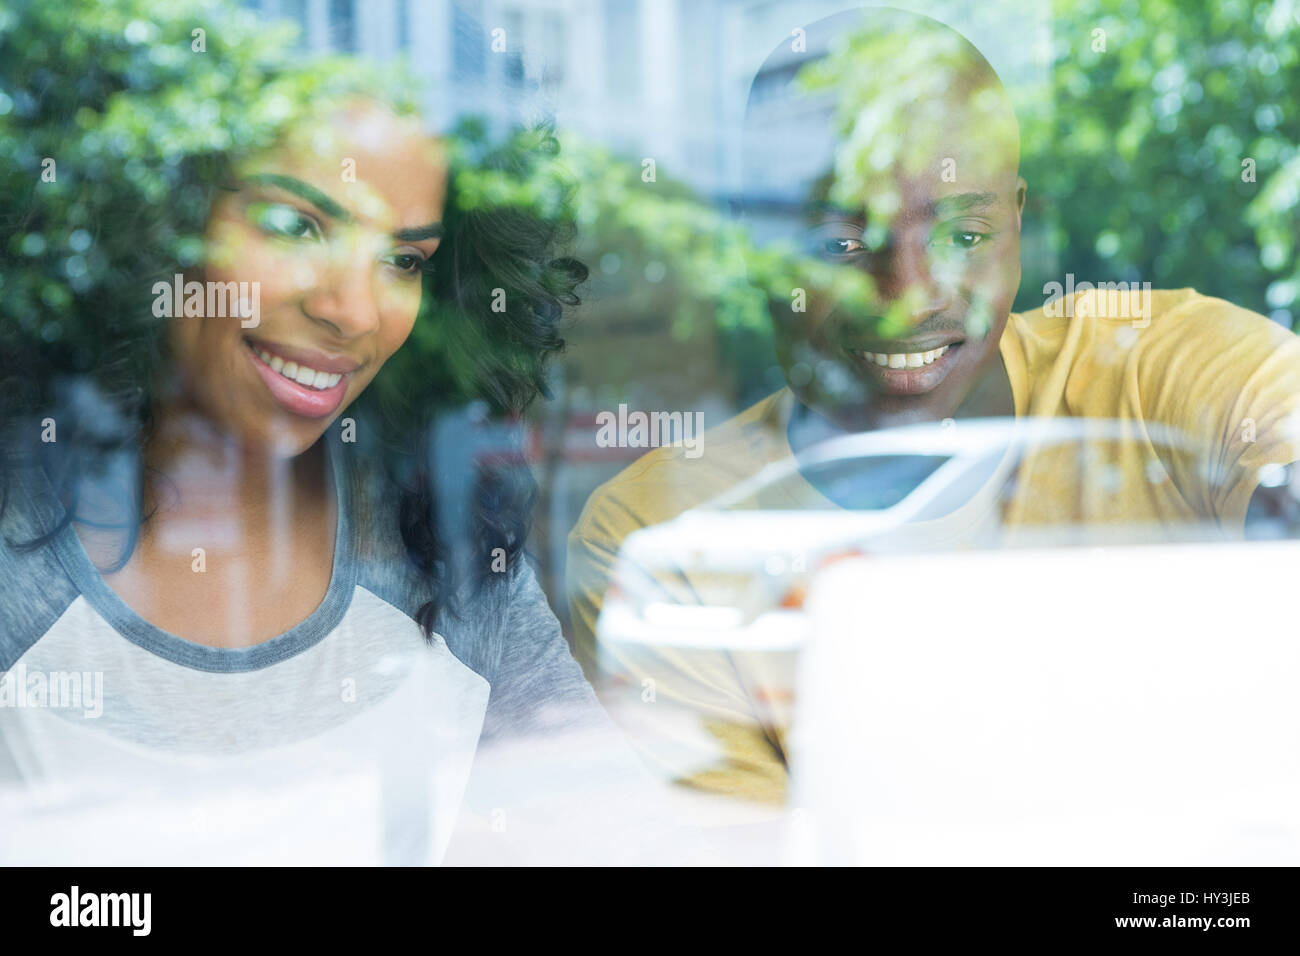 Smiling multi ethnic young couple in coffee shop seen through window - Stock Image